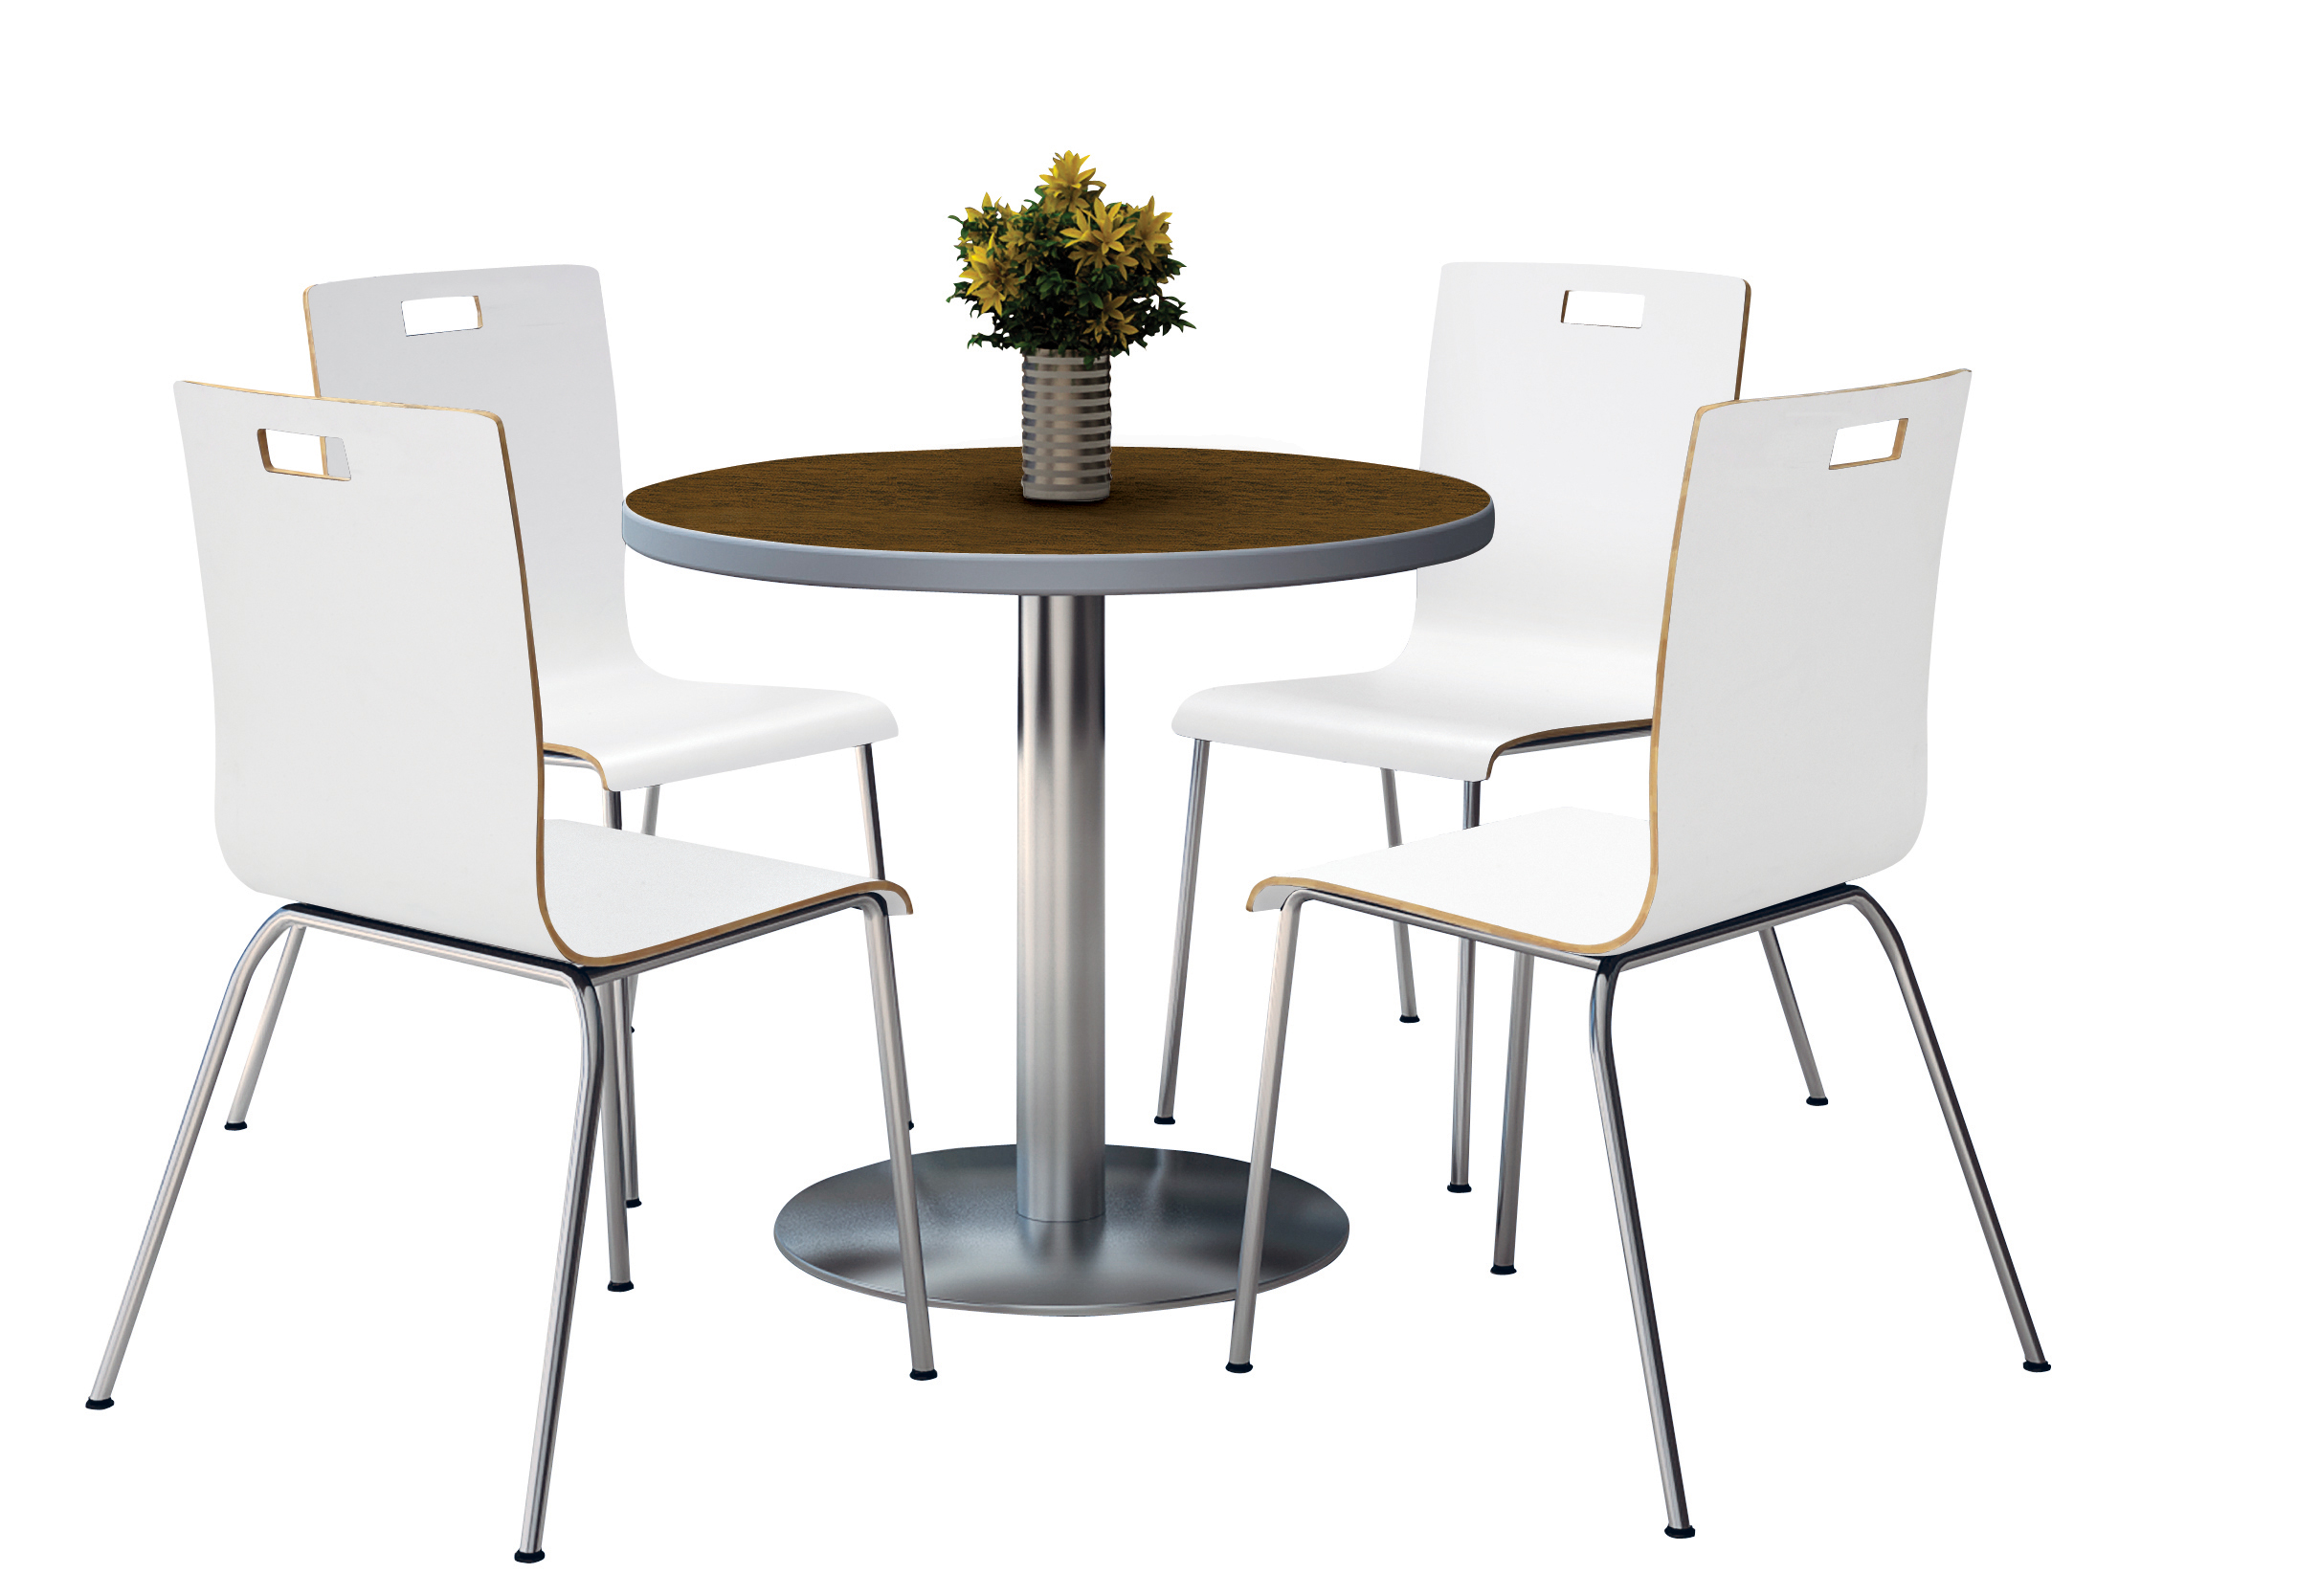 Kfi Round 42quot Dia Pedestal Breakroom Table With 4 White